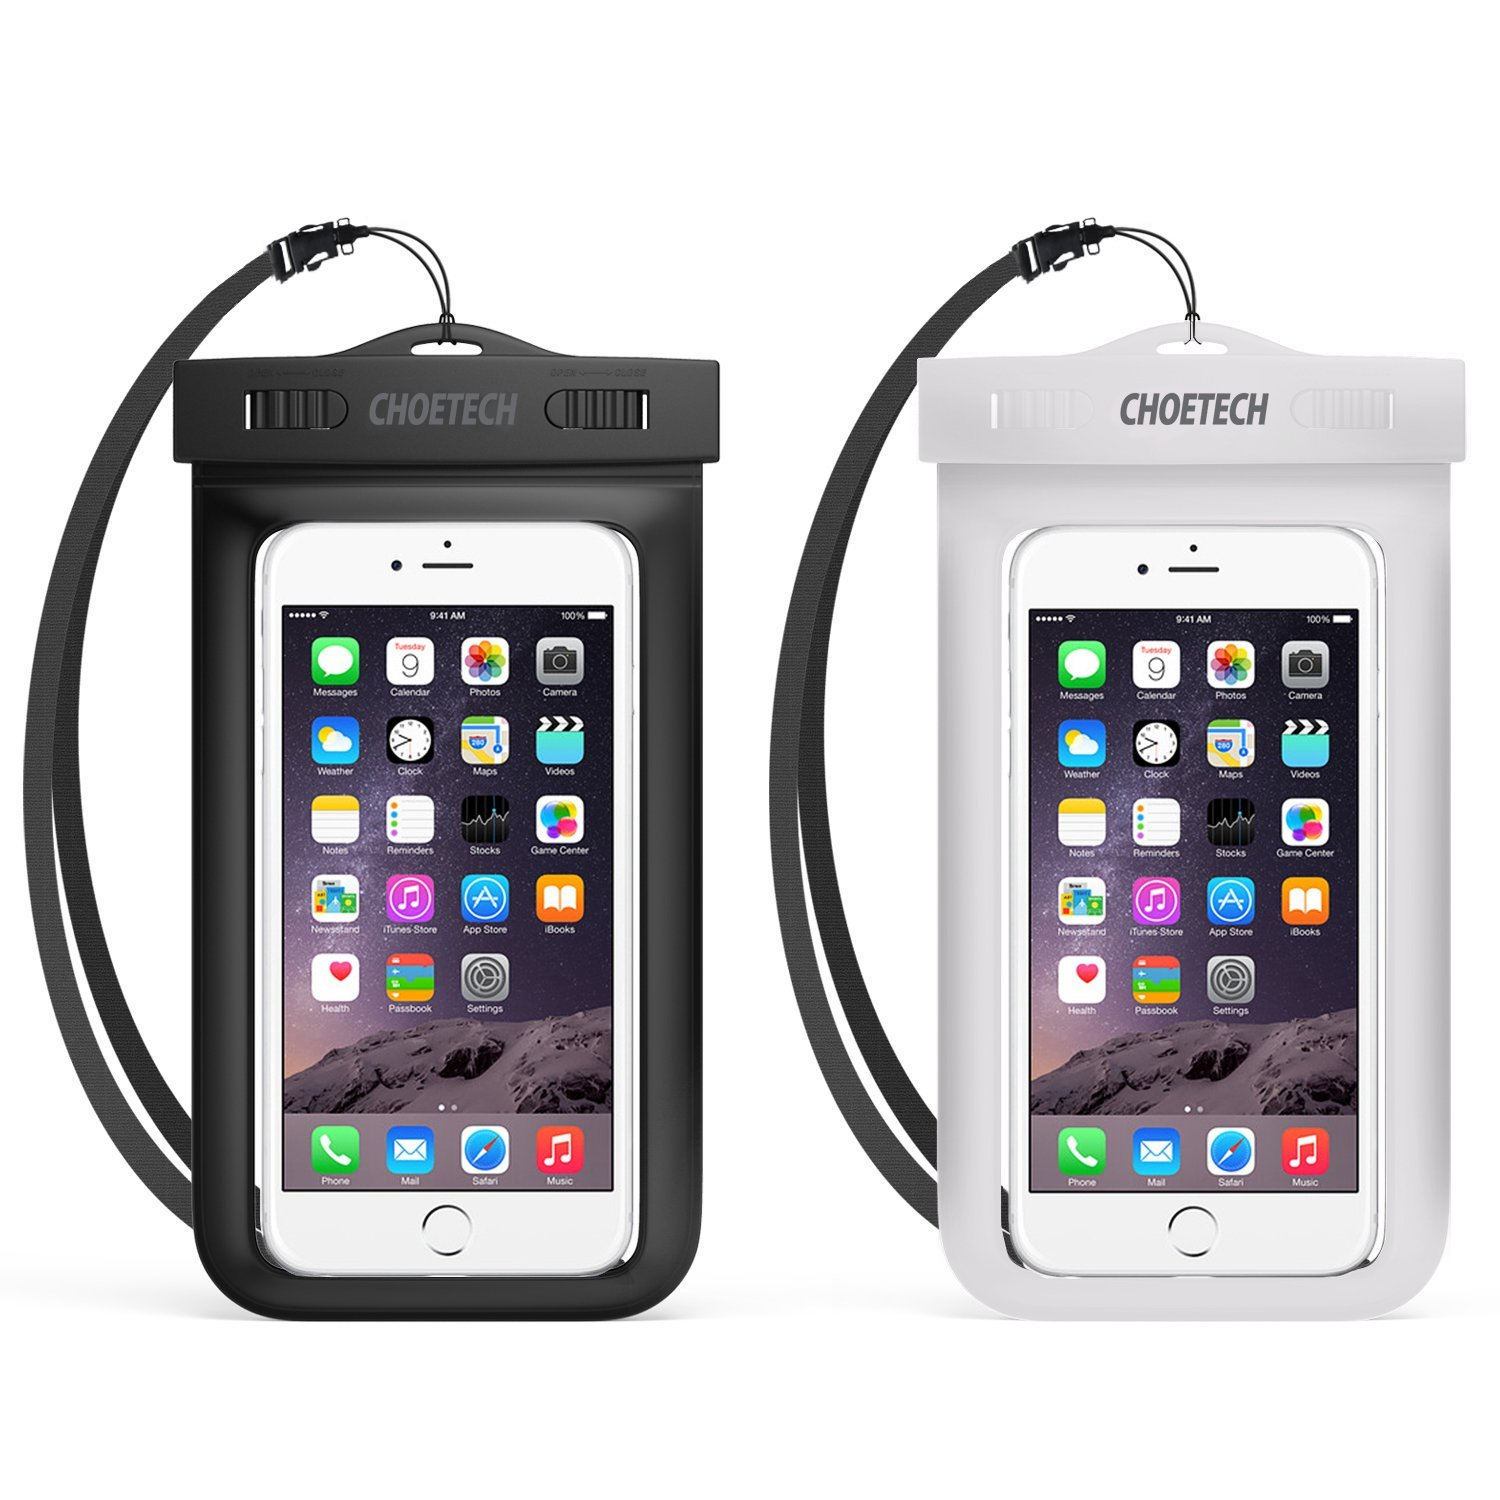 Universal Waterproof Case, CHOETECH 2 Pack Clear Transparent Cellphone Waterproof, Dustproof Dry Bag With Neck Strap for iphone 7, 7 Plus, 6S, 6S Plus, and All Devices Up to 6 Inches